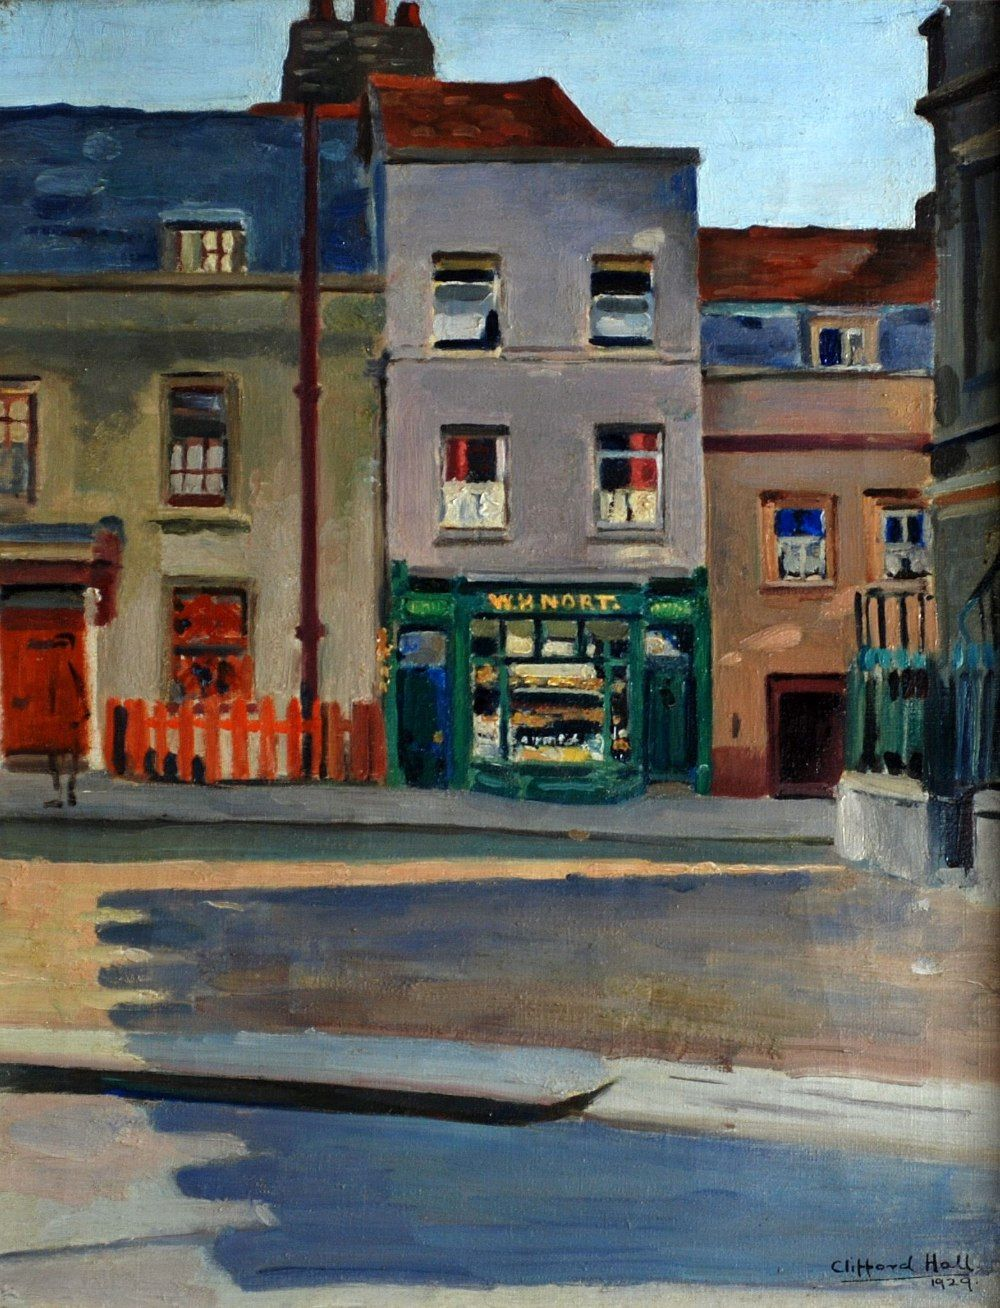 'The Square, Isleworth' 1929, by Clifford Hall. Oil on canvas painting, 17 x 13½ inches.